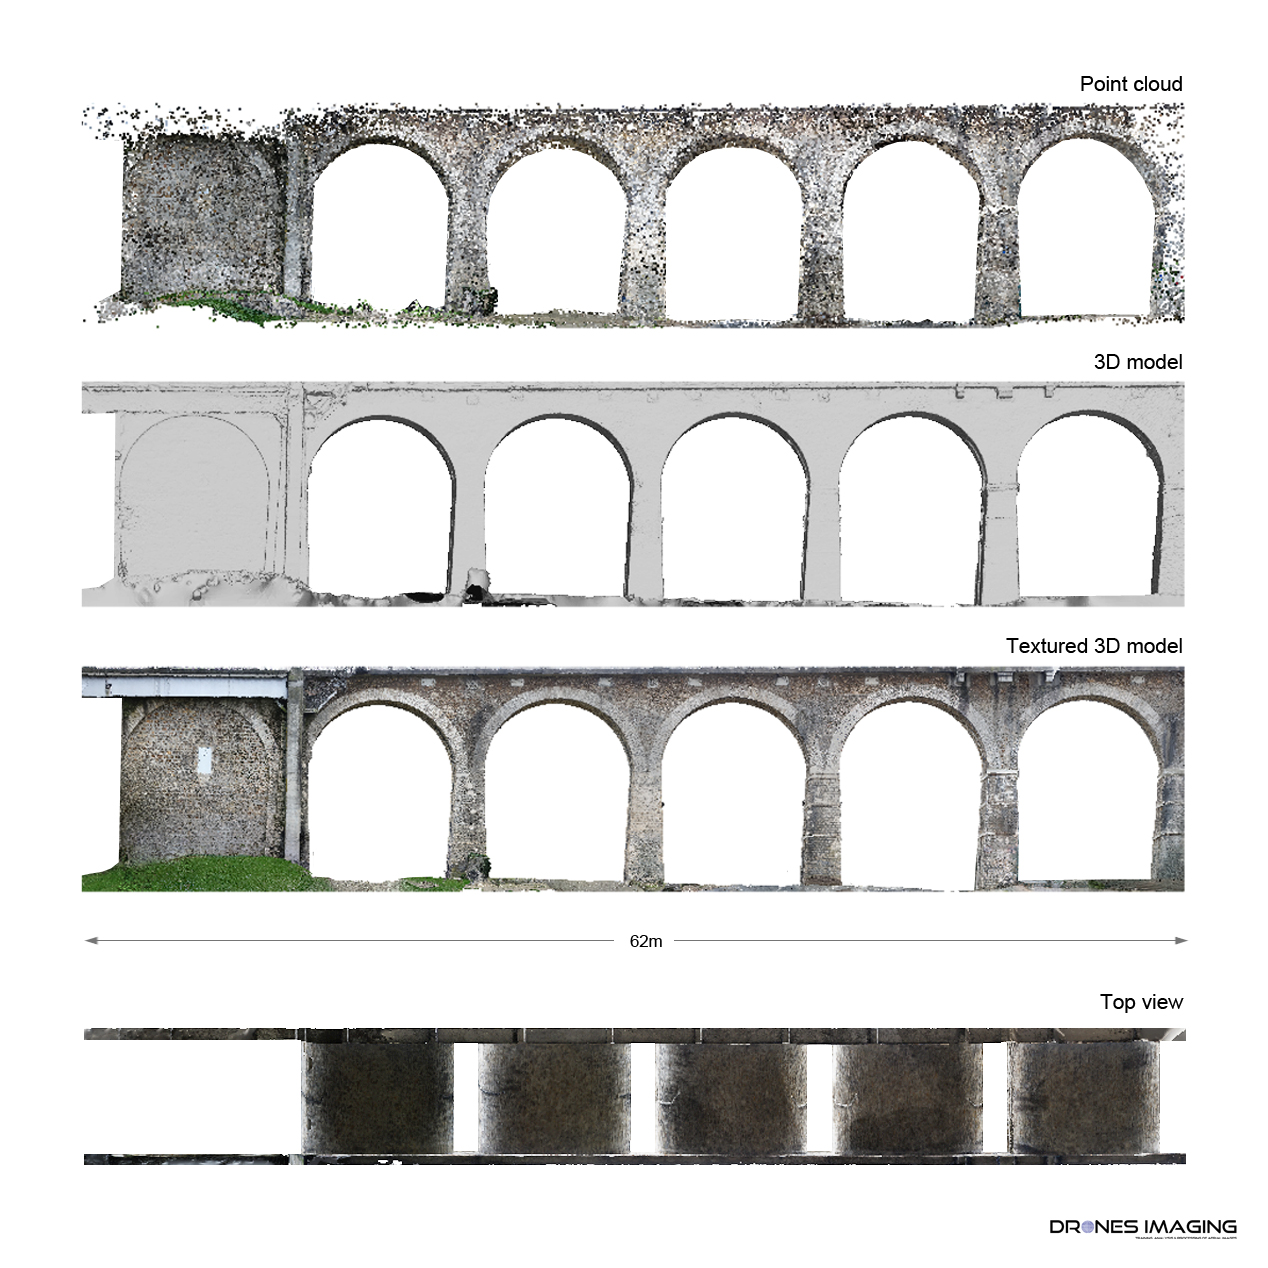 Building_Information_Modeling_3D_photogrammetry_Drones-Imaging©